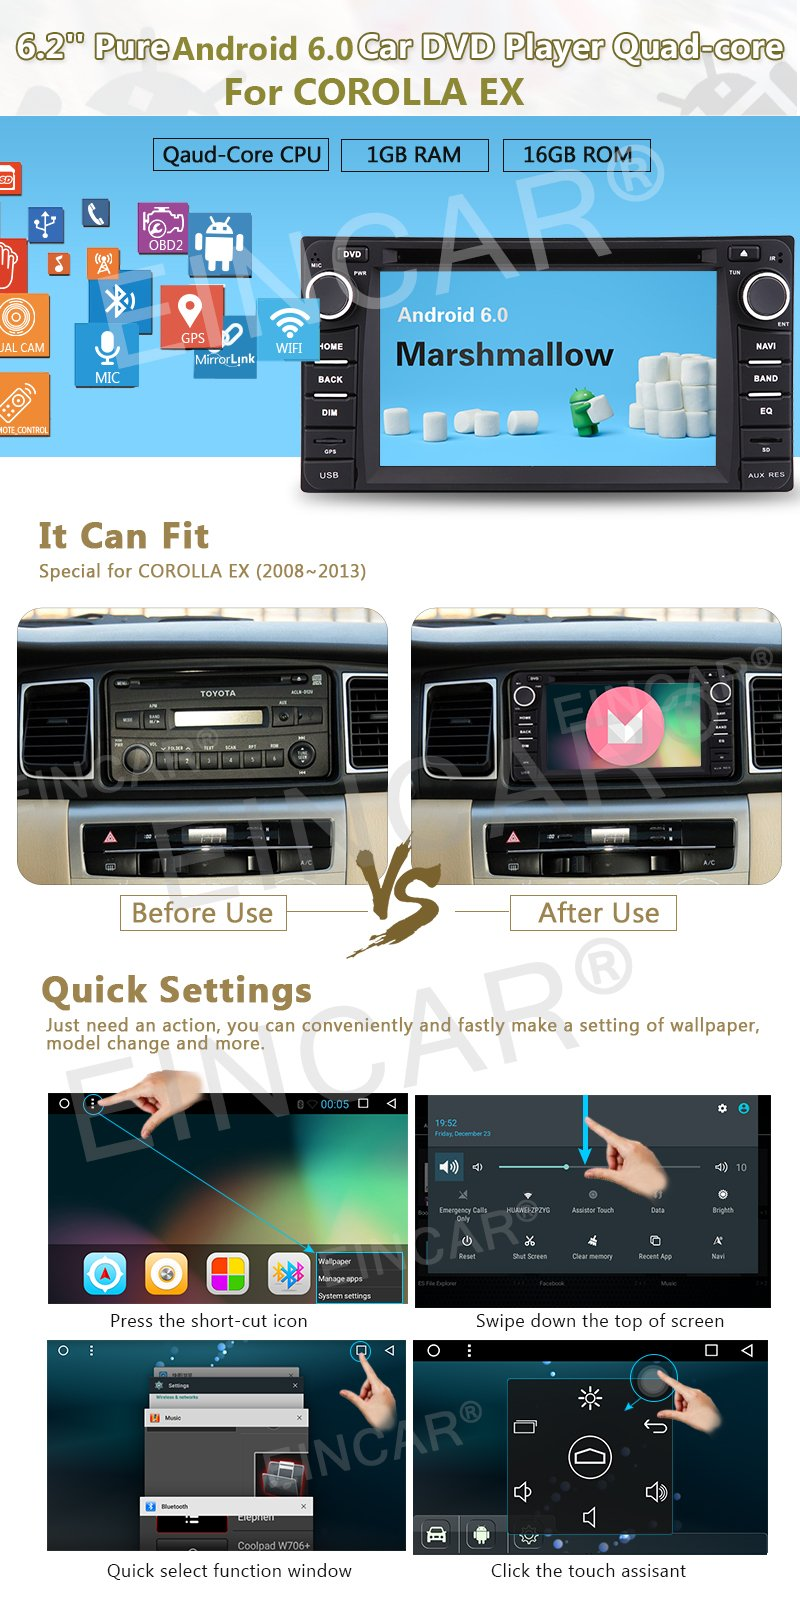 New Arrival 9 inch Tablet-style Ultra-thin Dual Car Headrest DVD Players 2 pcs Rear-seat Entertainment Systems support USB/SD/HDMI/IR/FM Transmitter Twin Screens in Pack